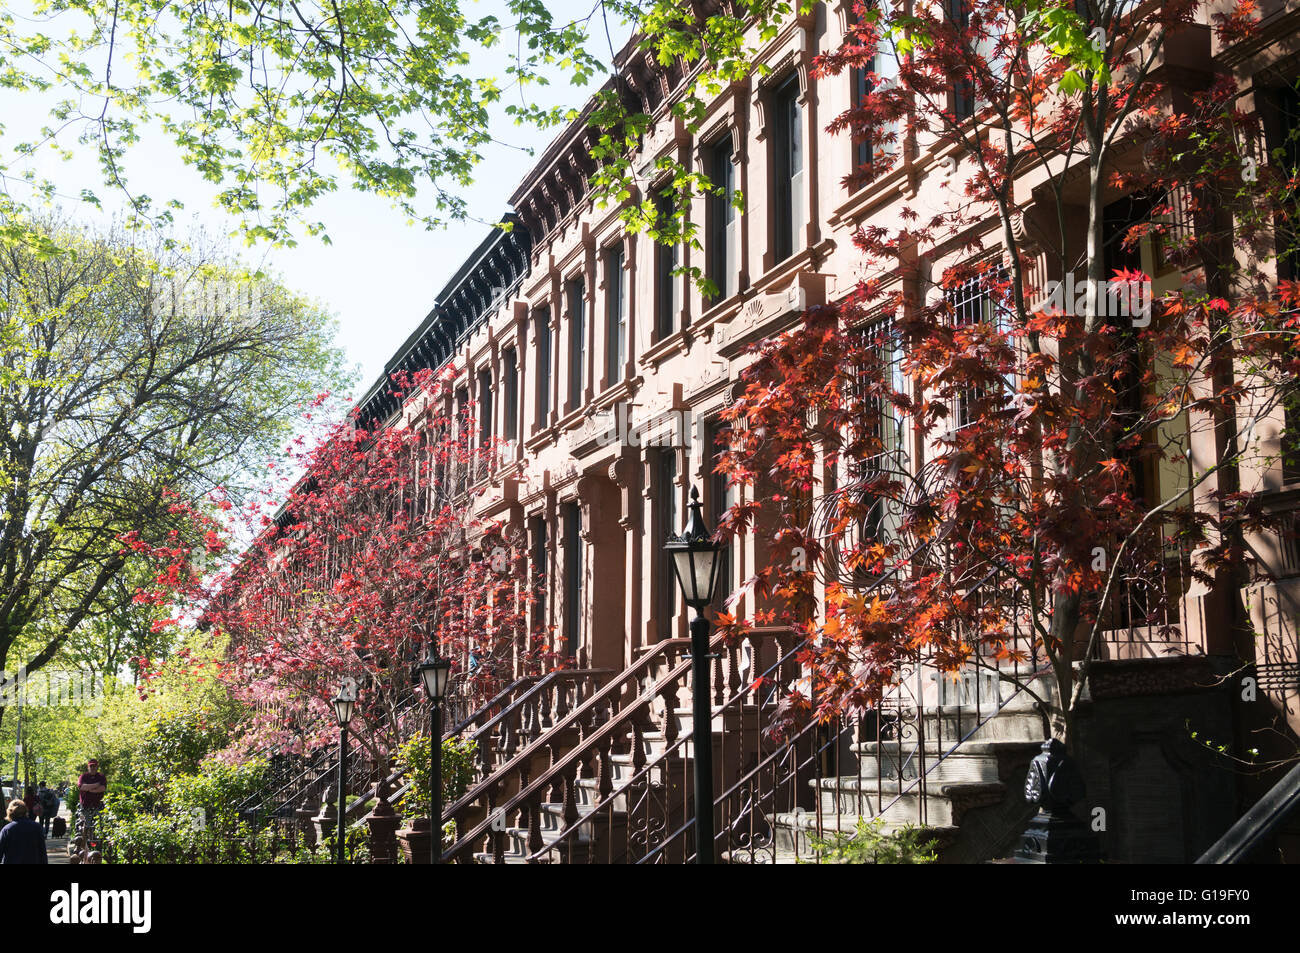 terrace-of-brownstone-houses-with-spring